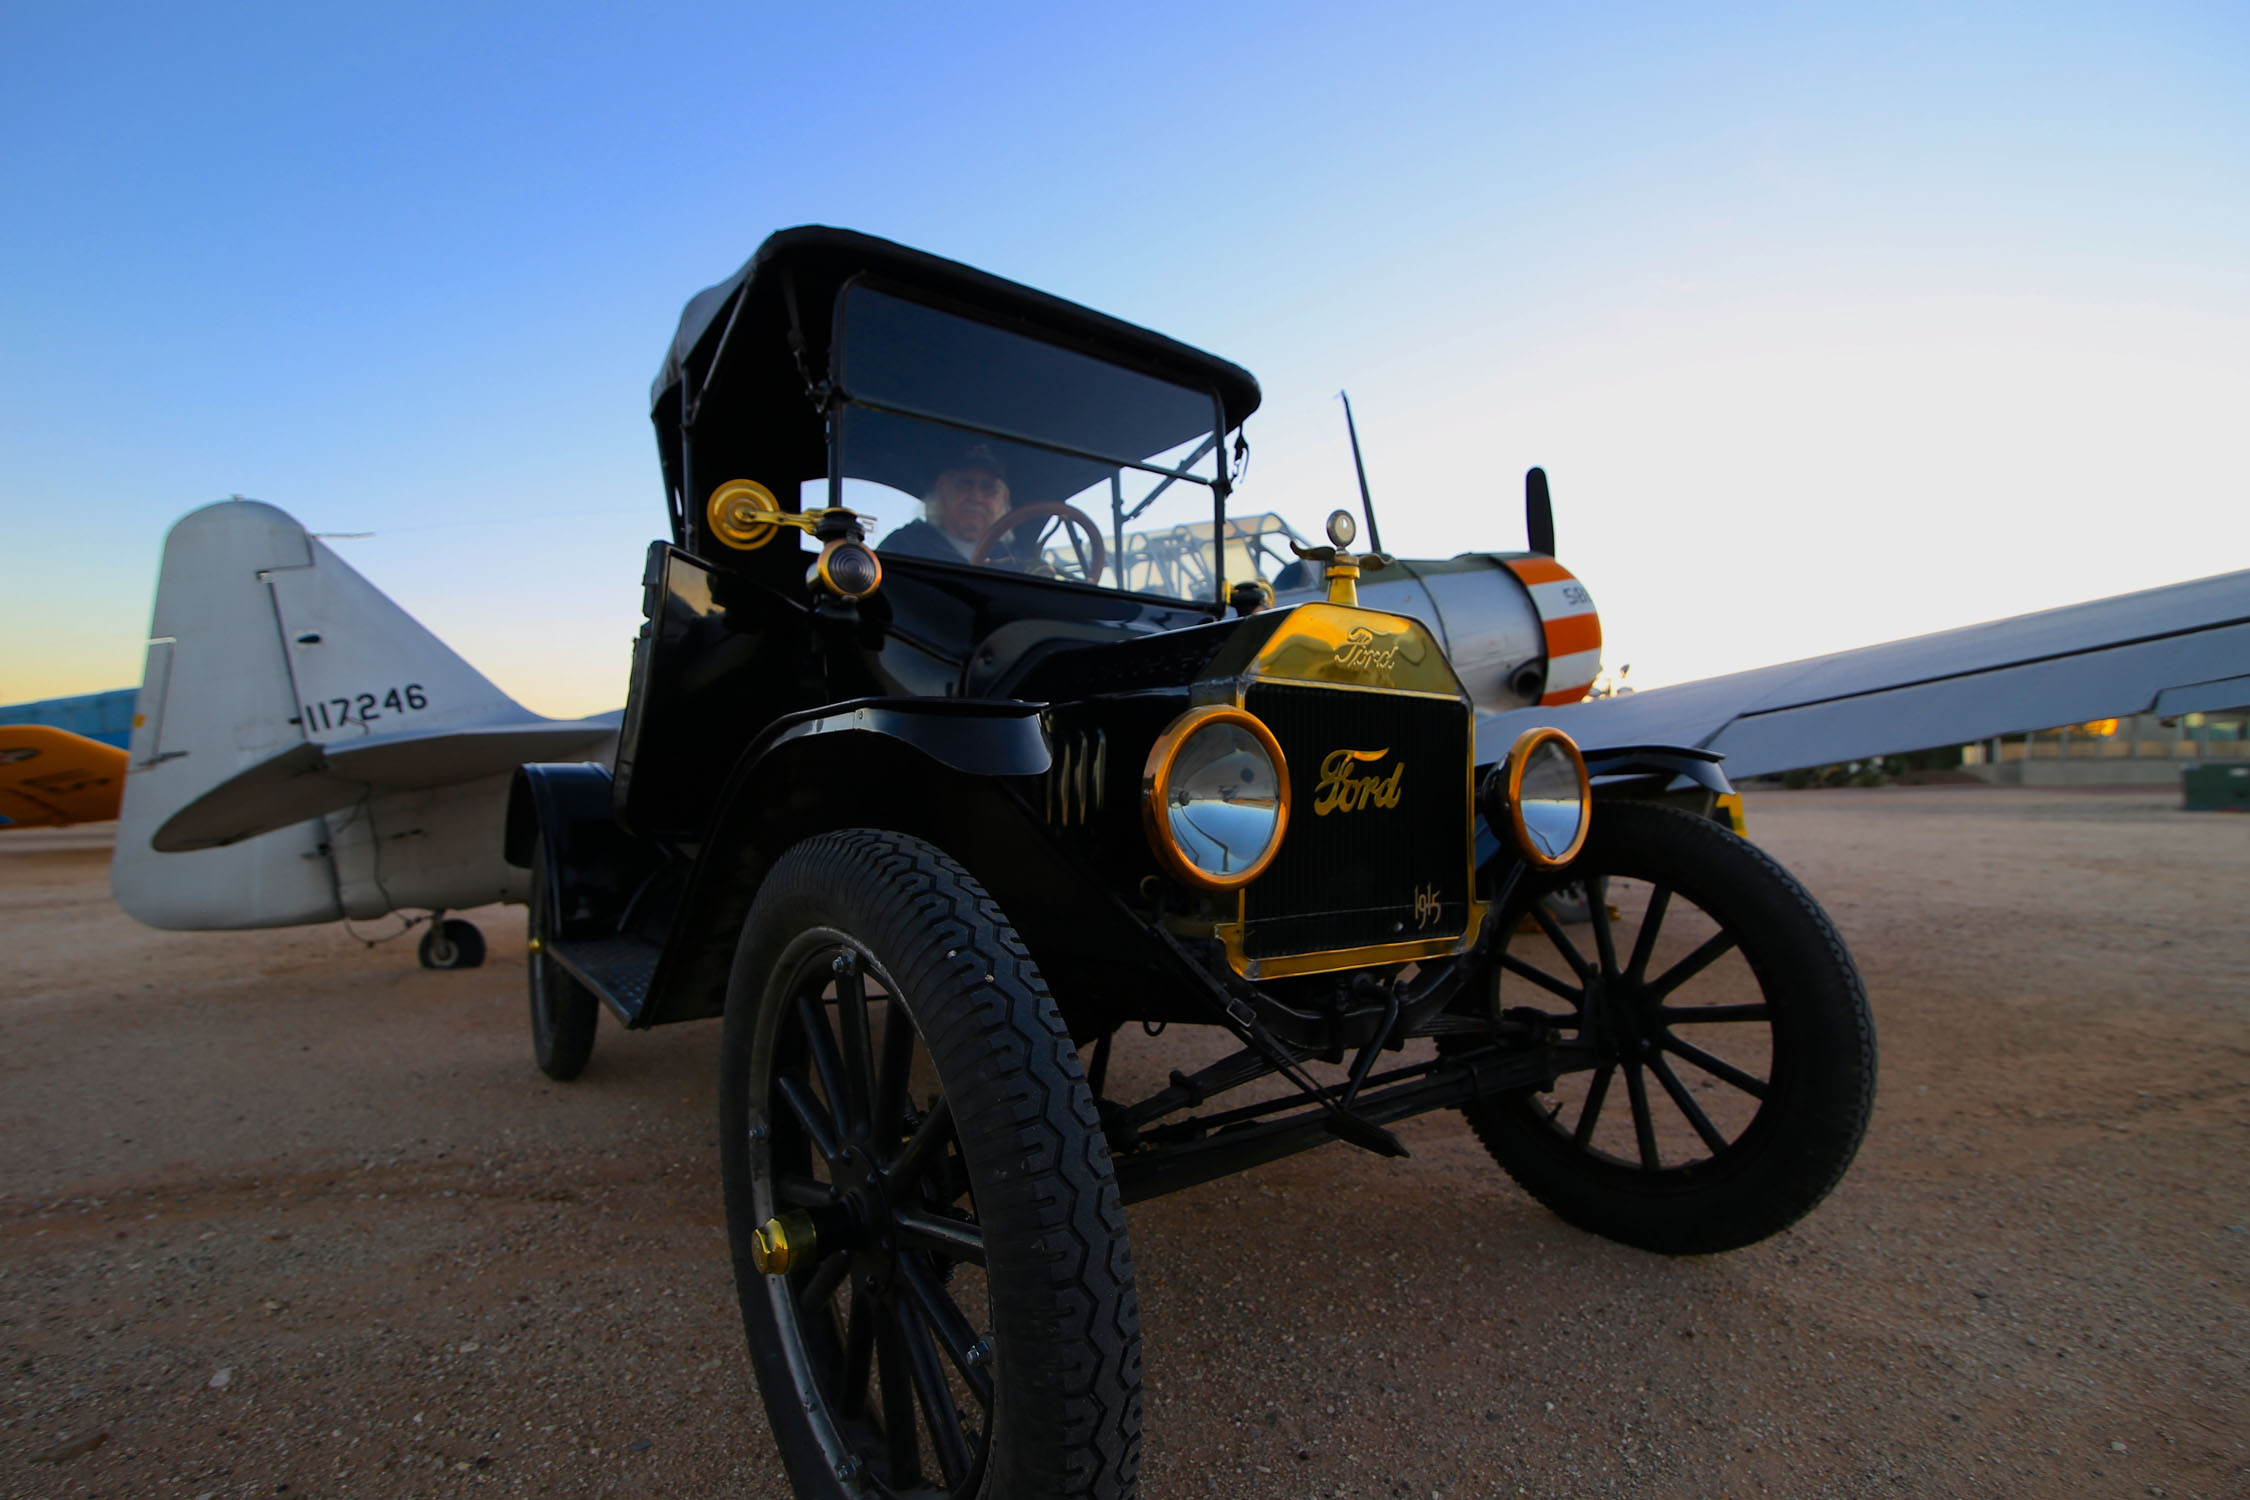 om Wulfe, Pima Air & Space Museum volunteer, Model A & T Club member, and former pilot, with his restored Model T in front of a plane style he previously flew, an AT-6 Texan. Photo by Richard Johnson.